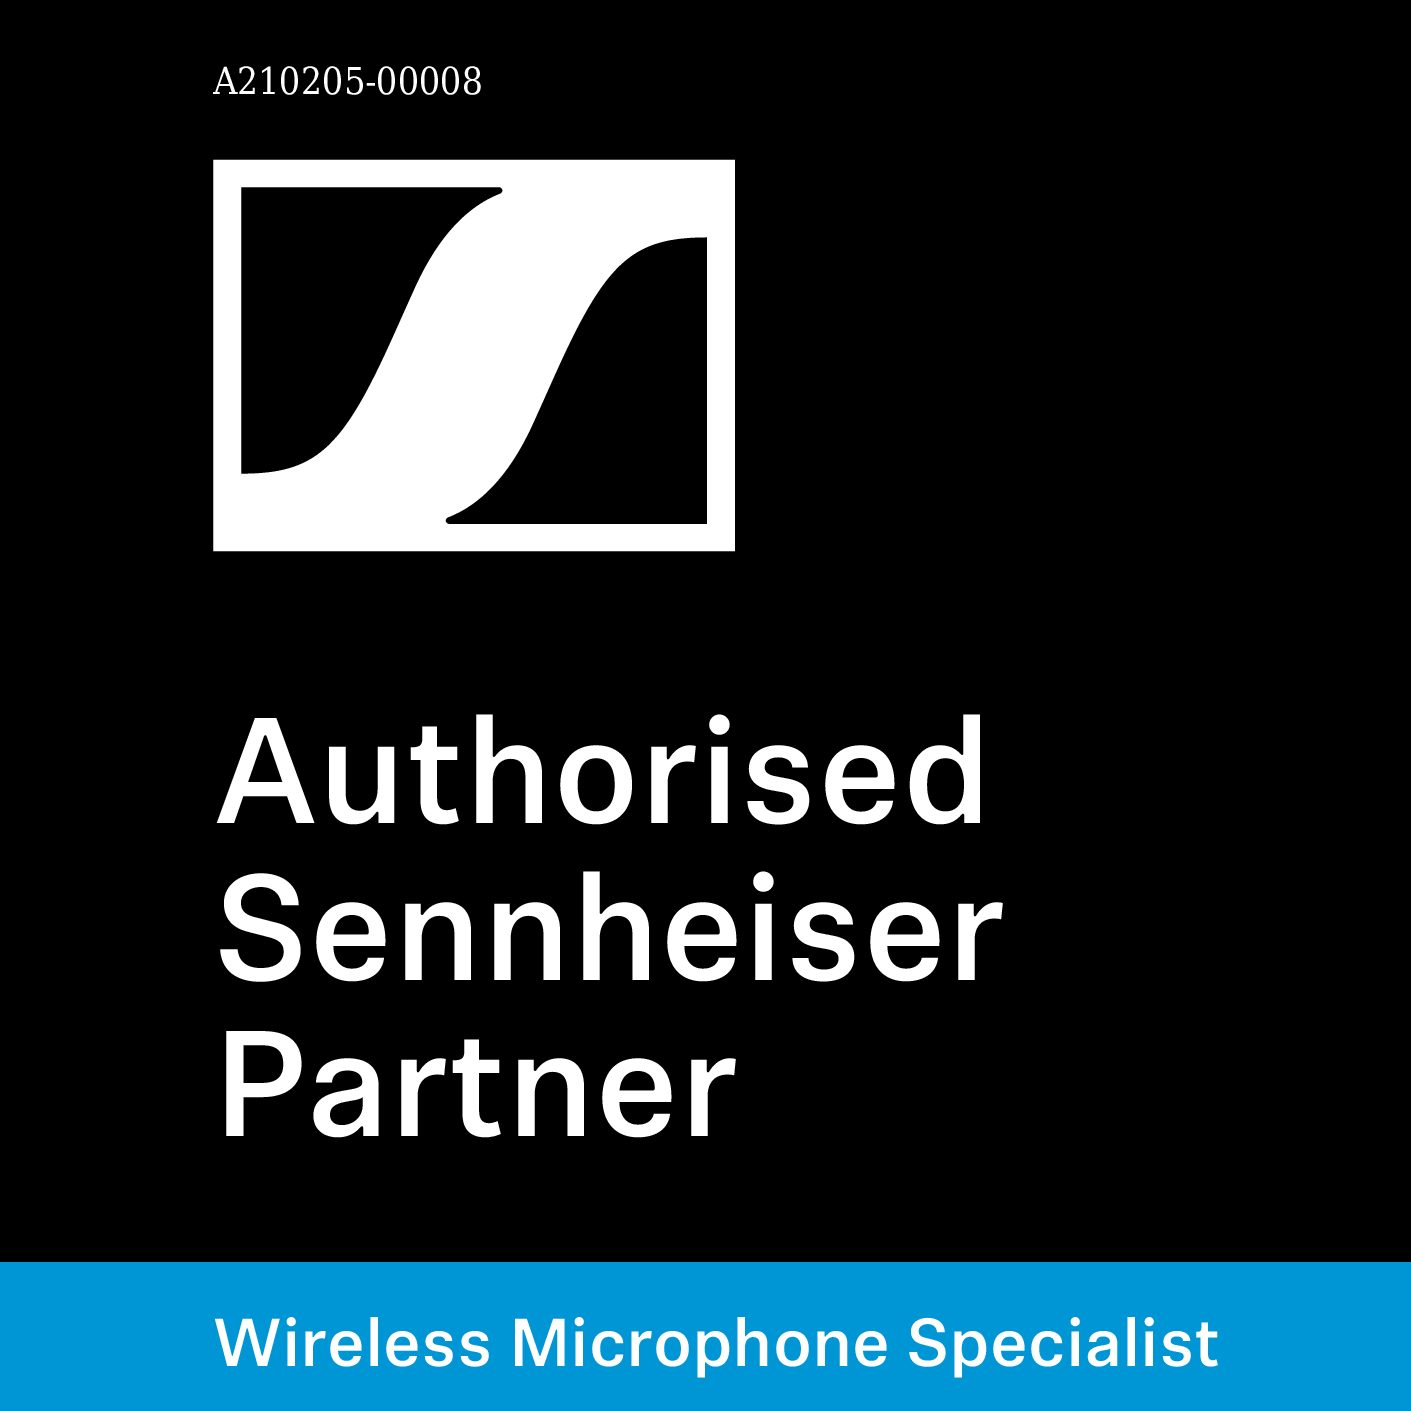 Sennheiser Wireless Microphone Specialist